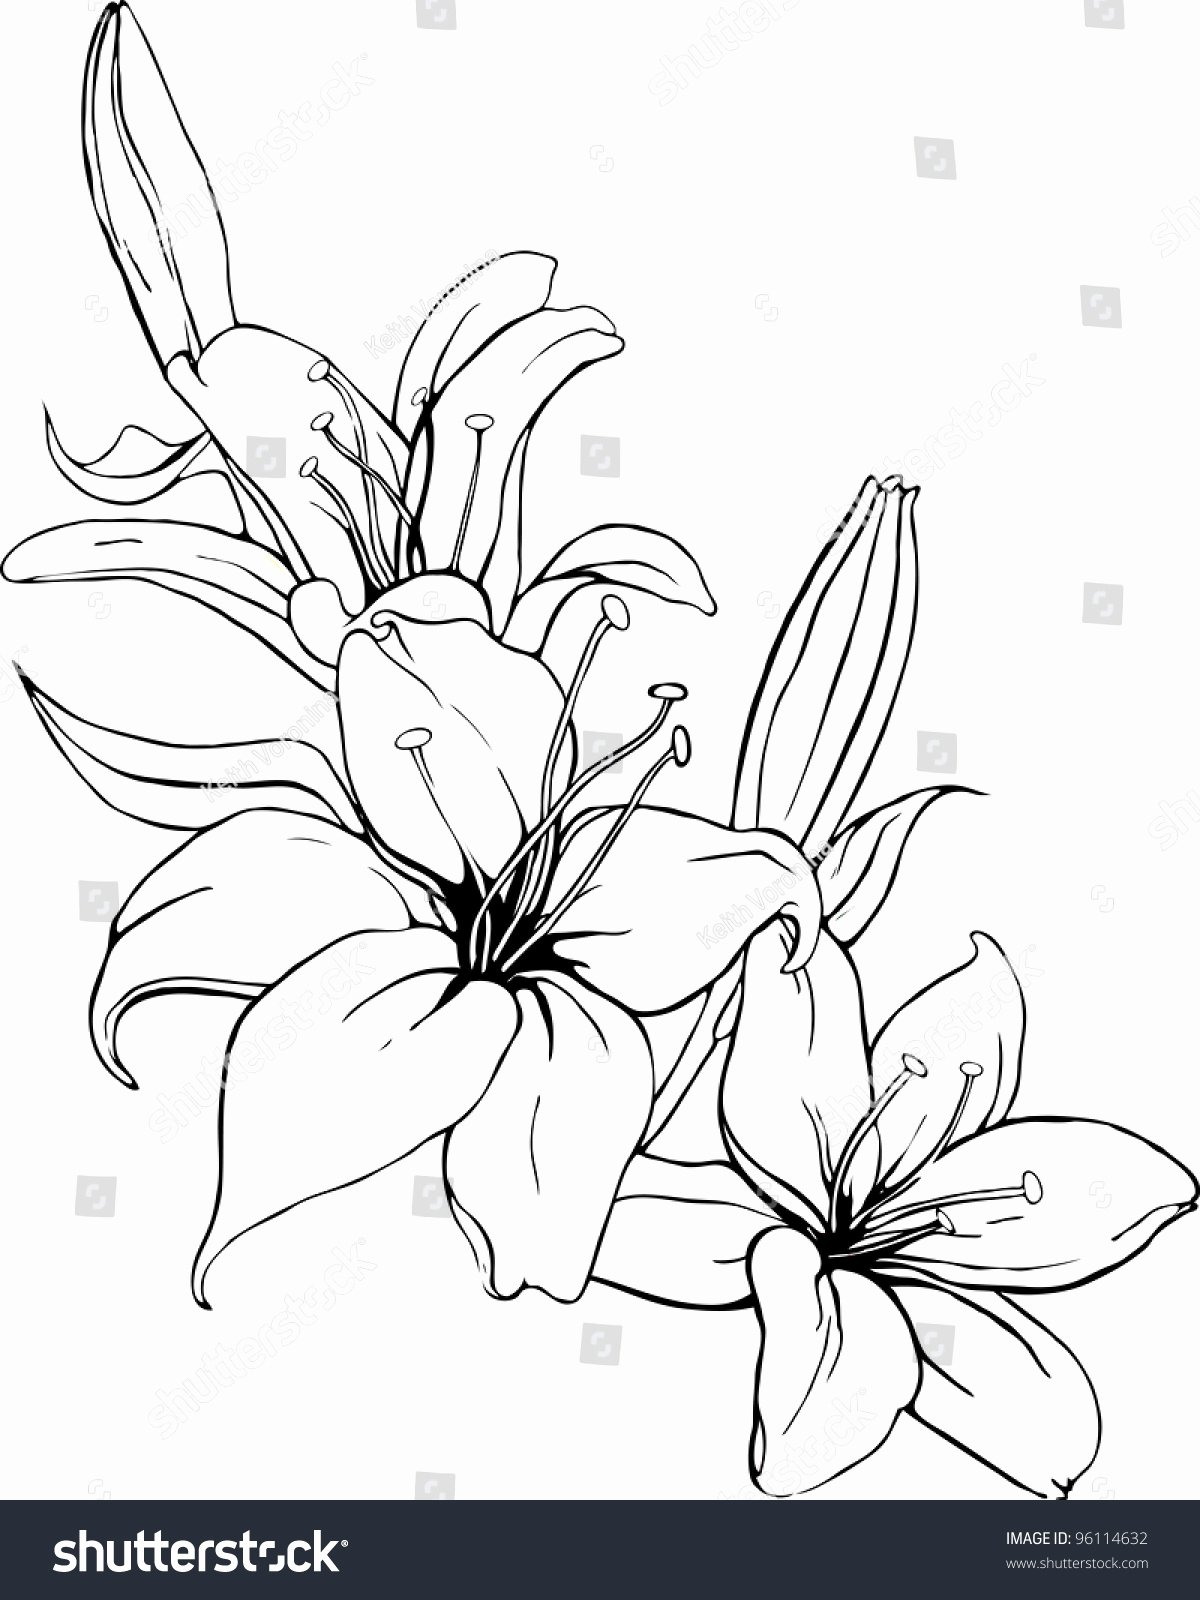 Black and White Illustration Beautiful Vector Illustration Lily In Black and White Colors